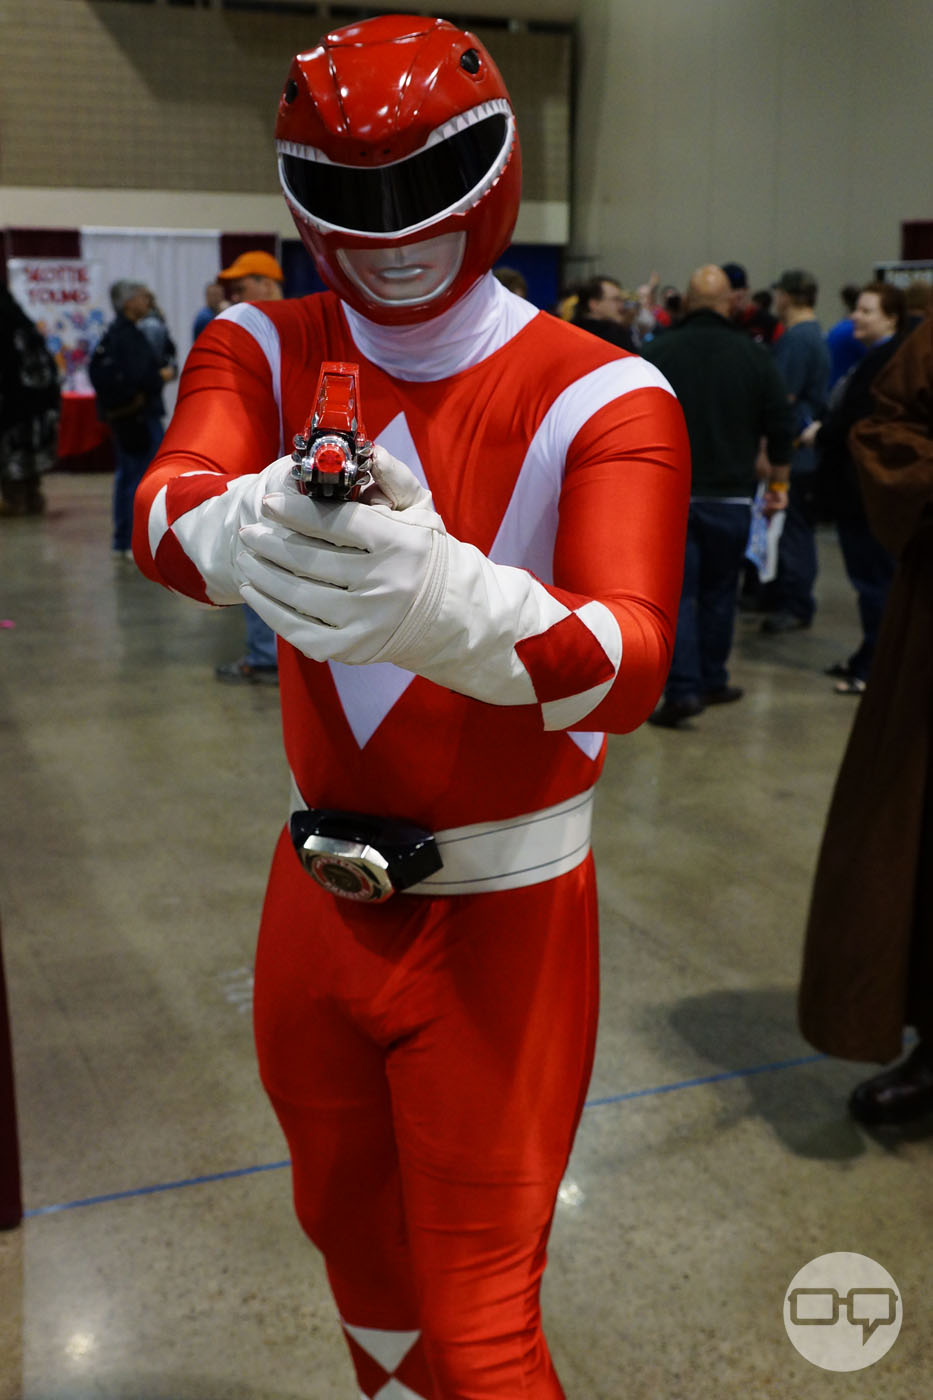 Planet-Comicon-2015-ProNerd-Cosplay-D5-6